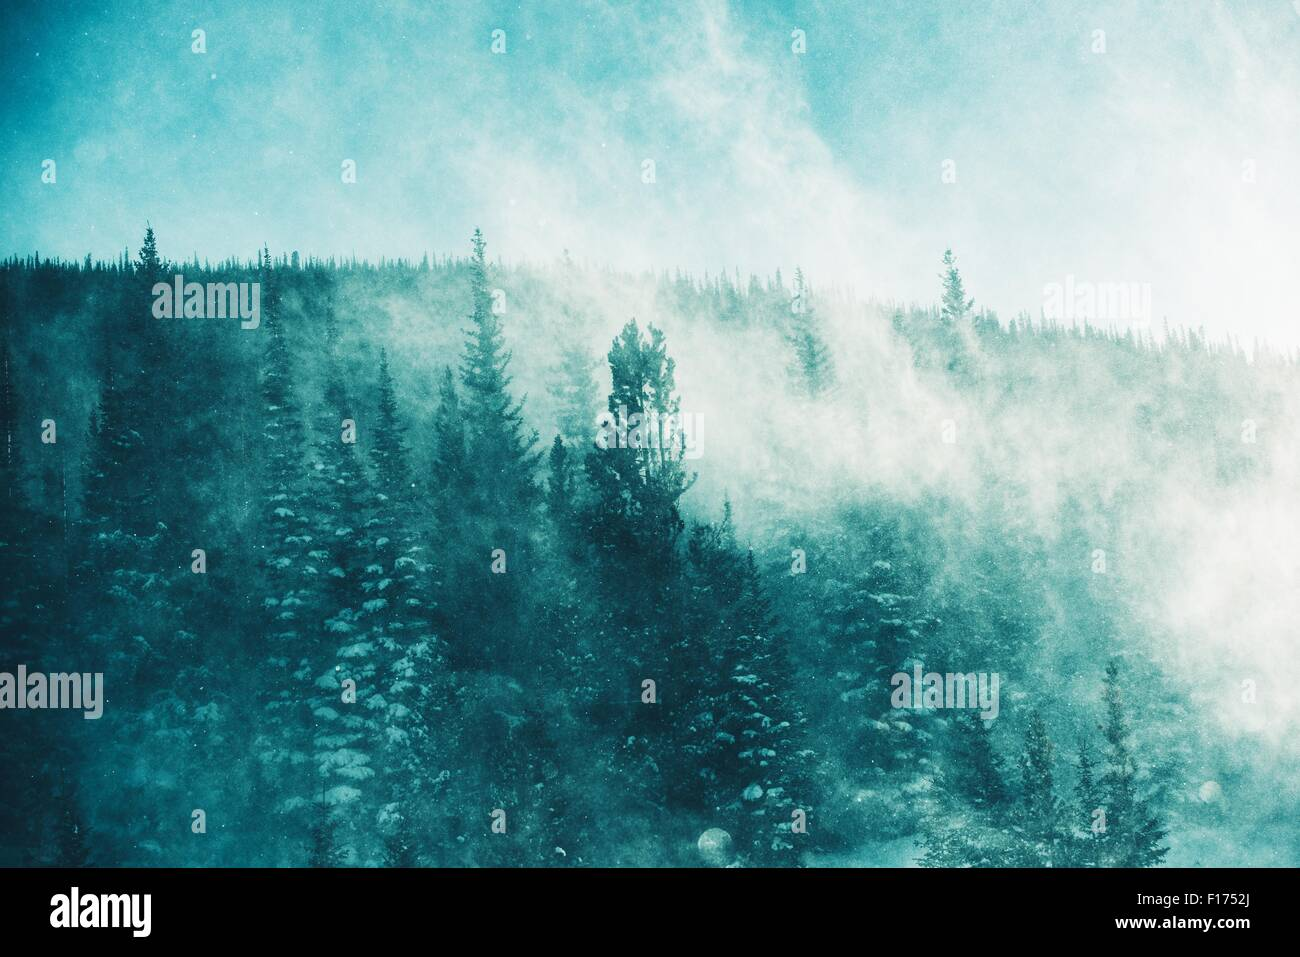 The Winter Storm. Extreme Winter Storm Conditions with High Wind and Blowing Snow in the Forest. Winter Scenery - Stock Image